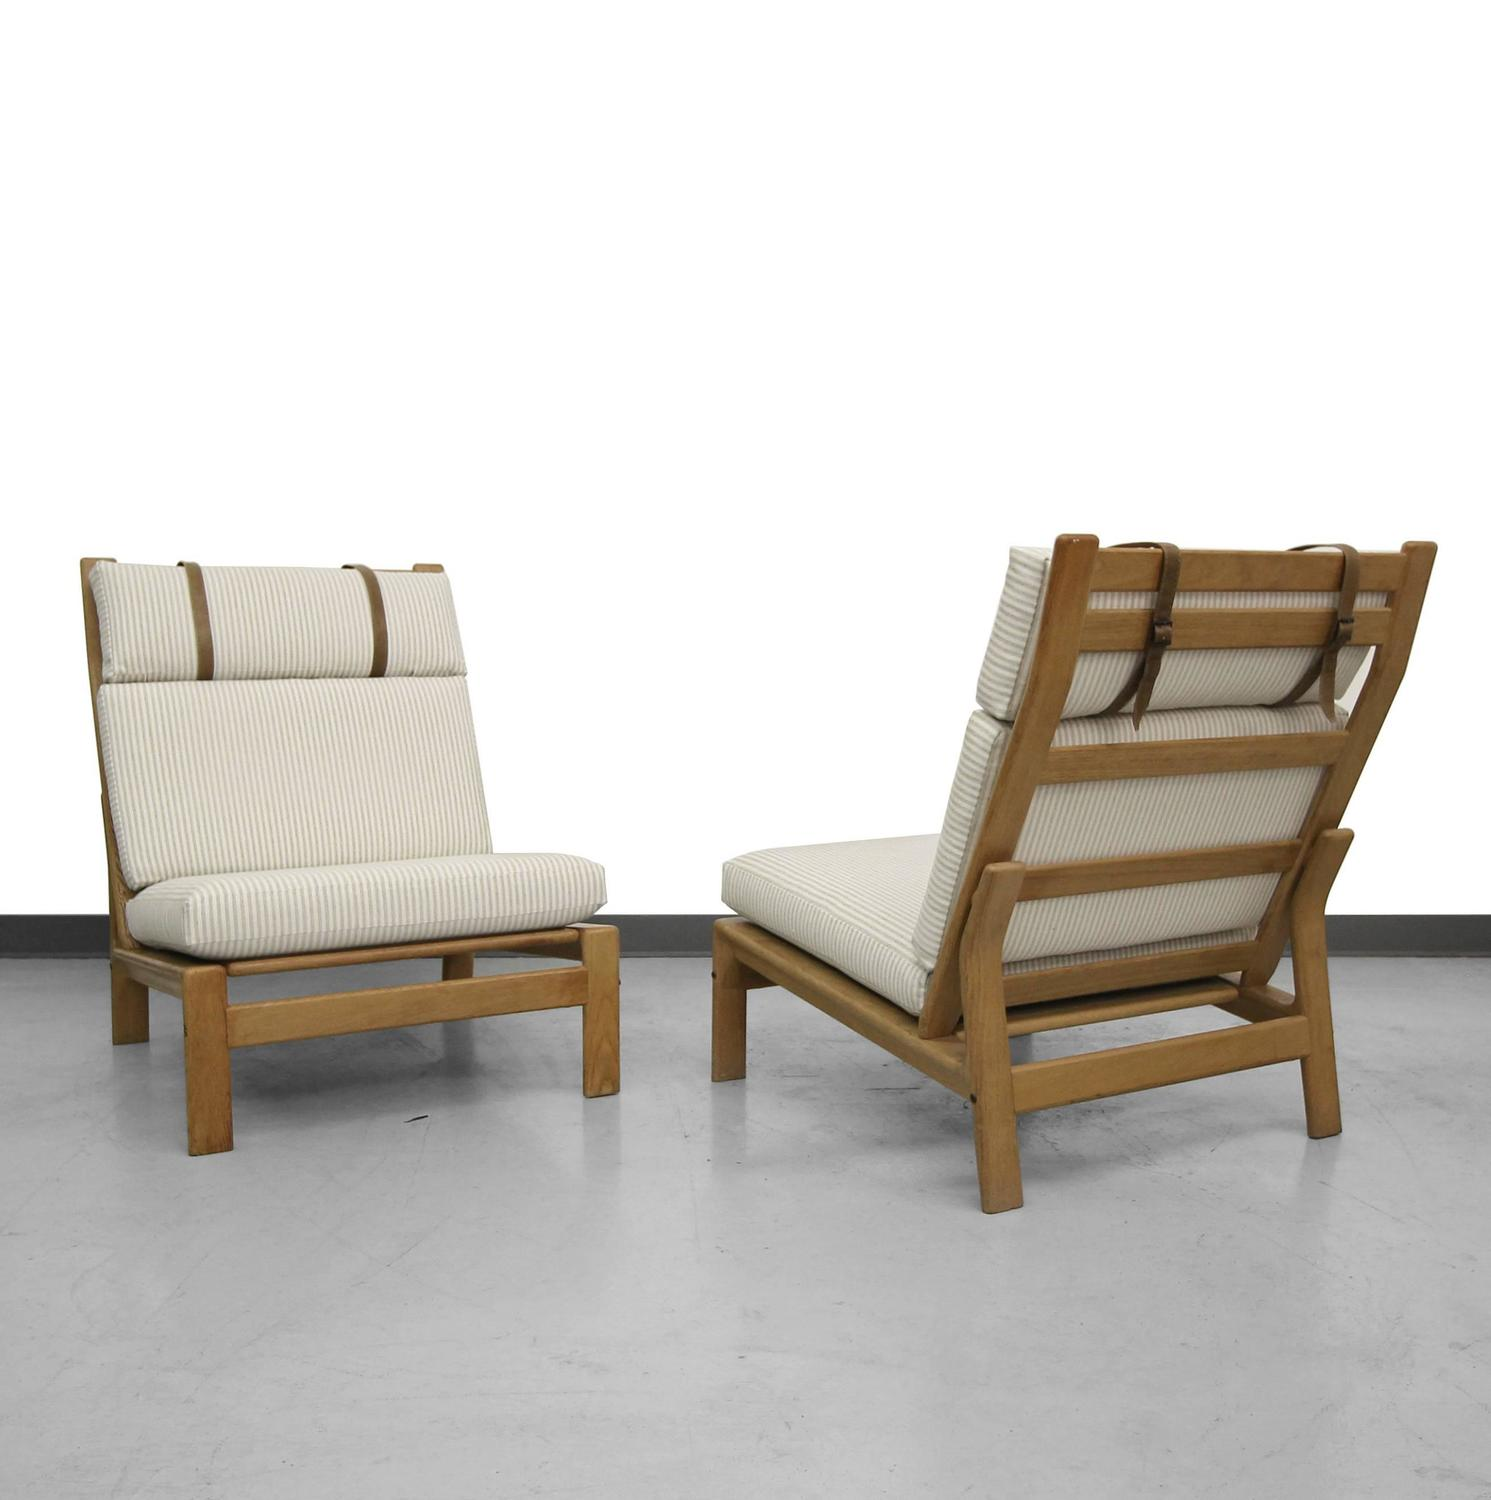 Pair of oversized danish lounge chairs by komfort design at 1stdibs - Designer couch modelle komfort ...